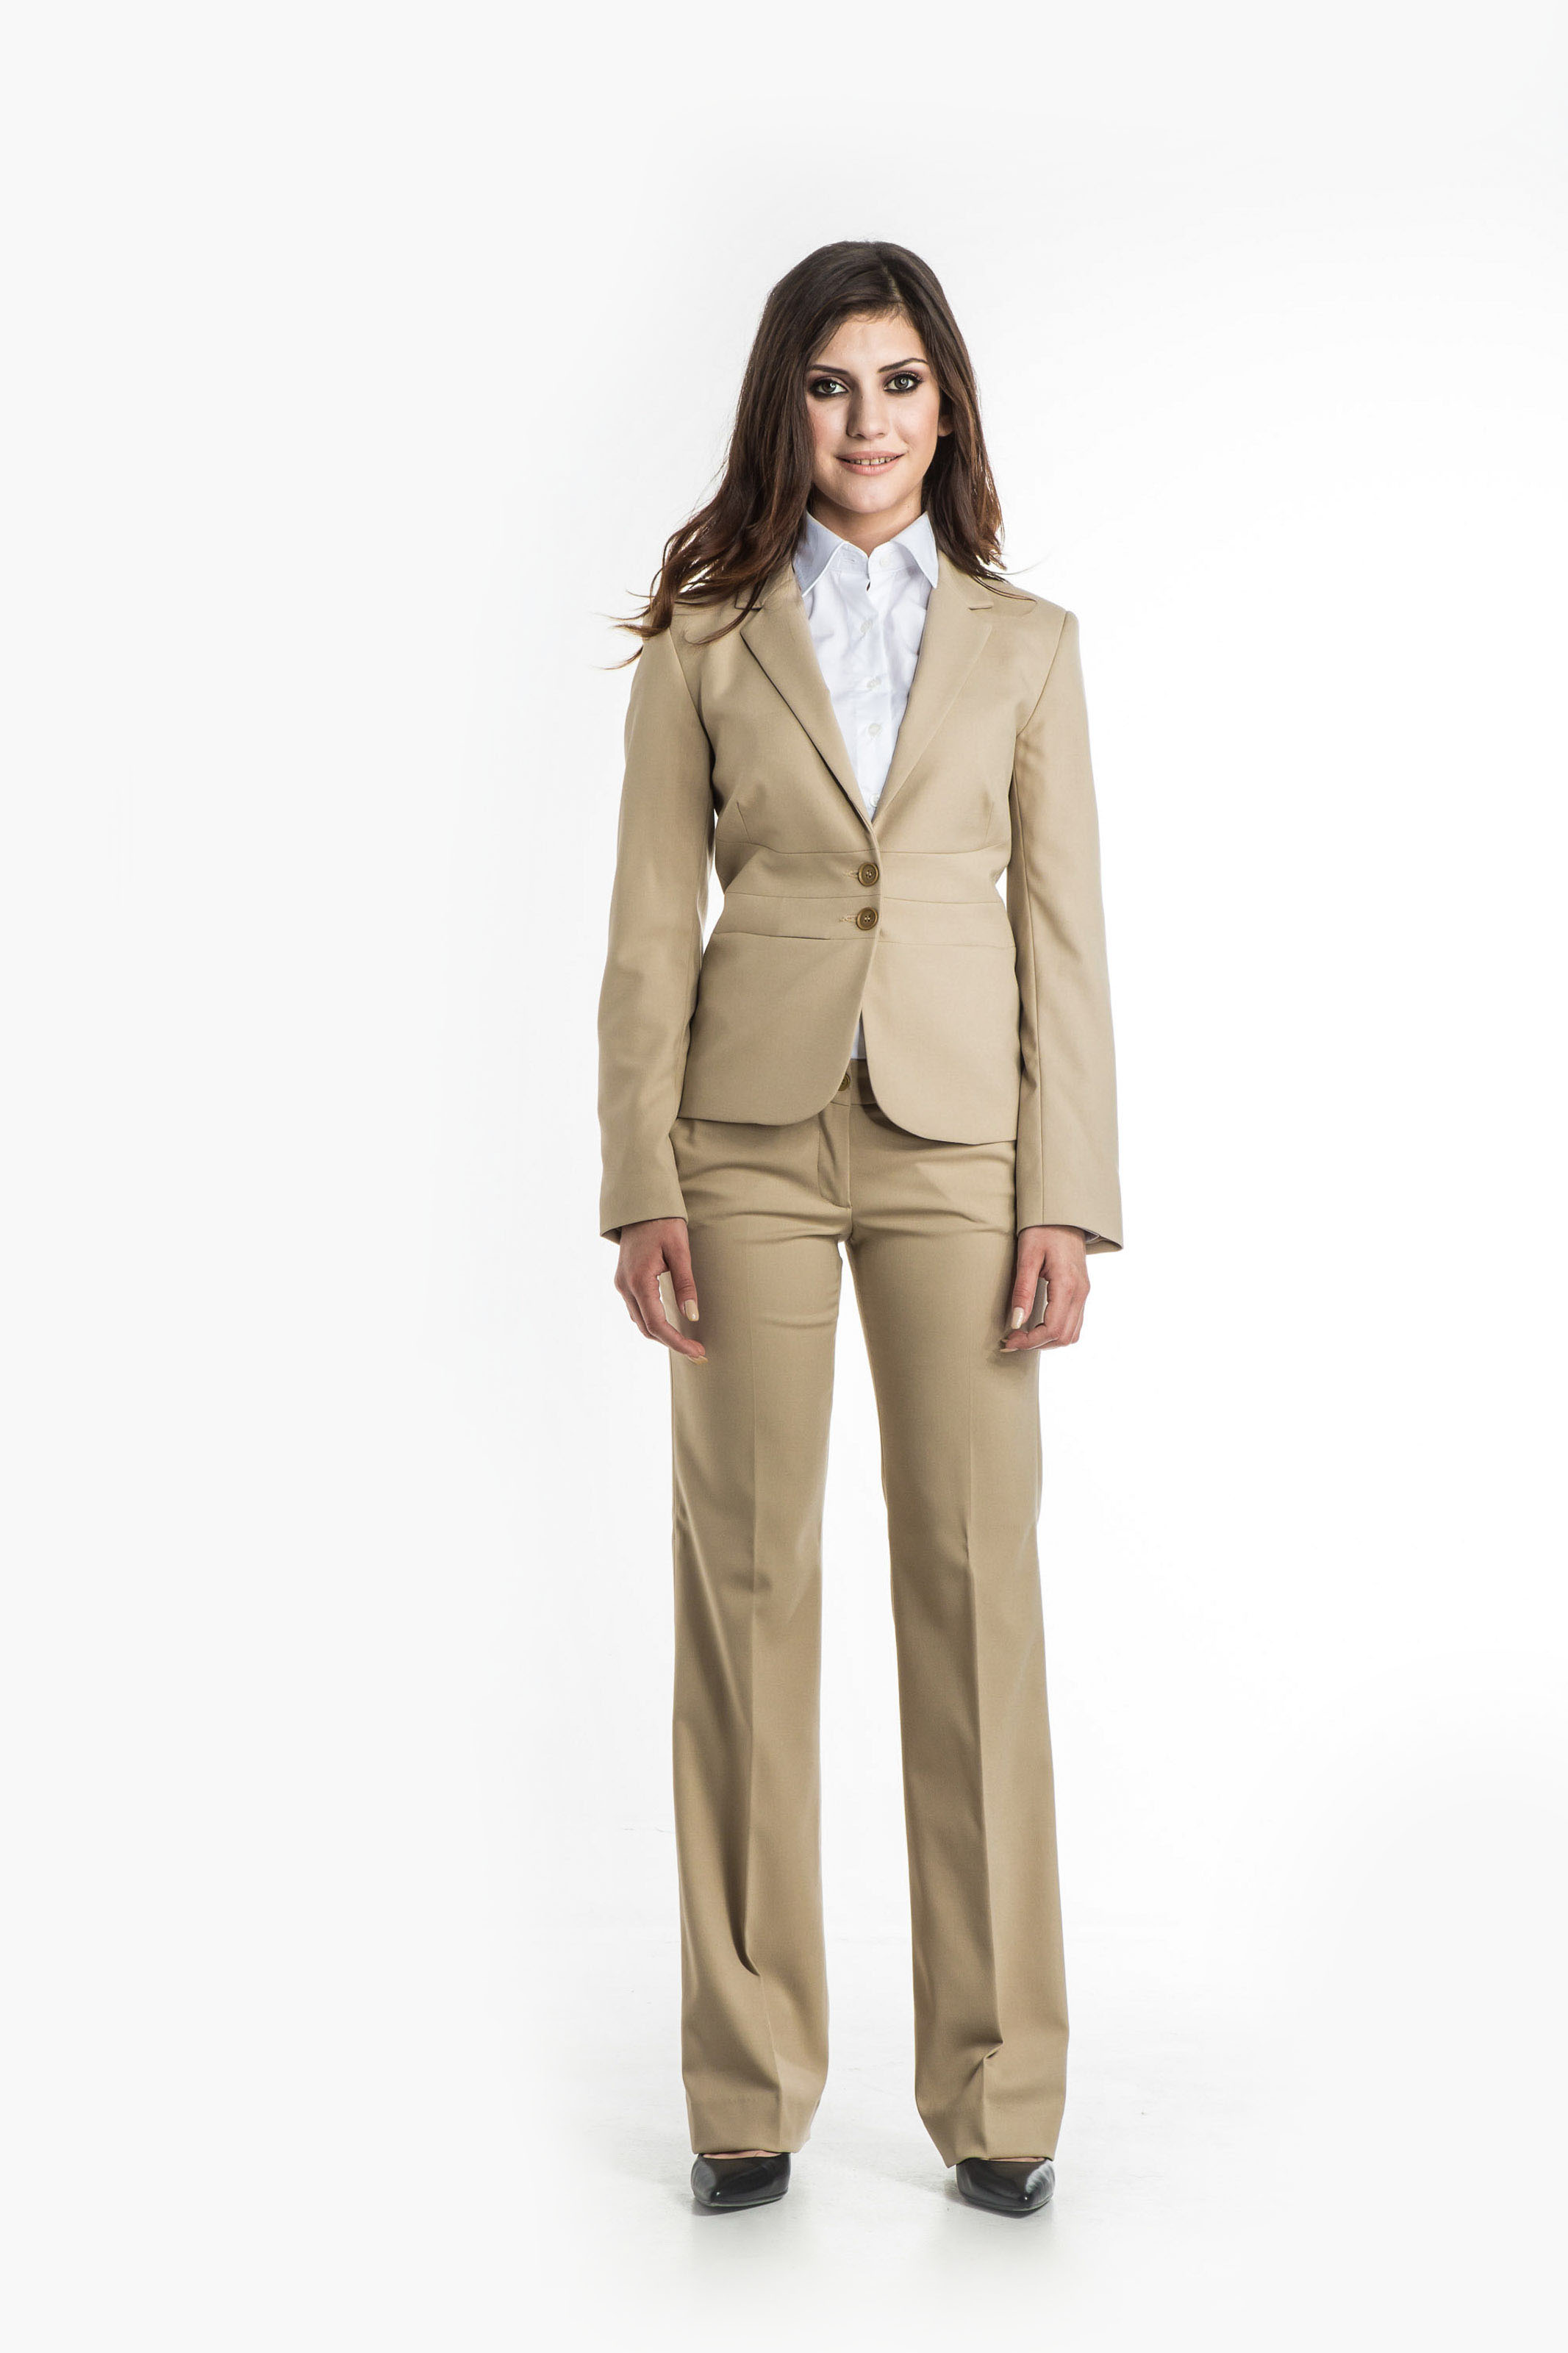 Aris Uniforms-FJ05-Stefania Women's Jacket